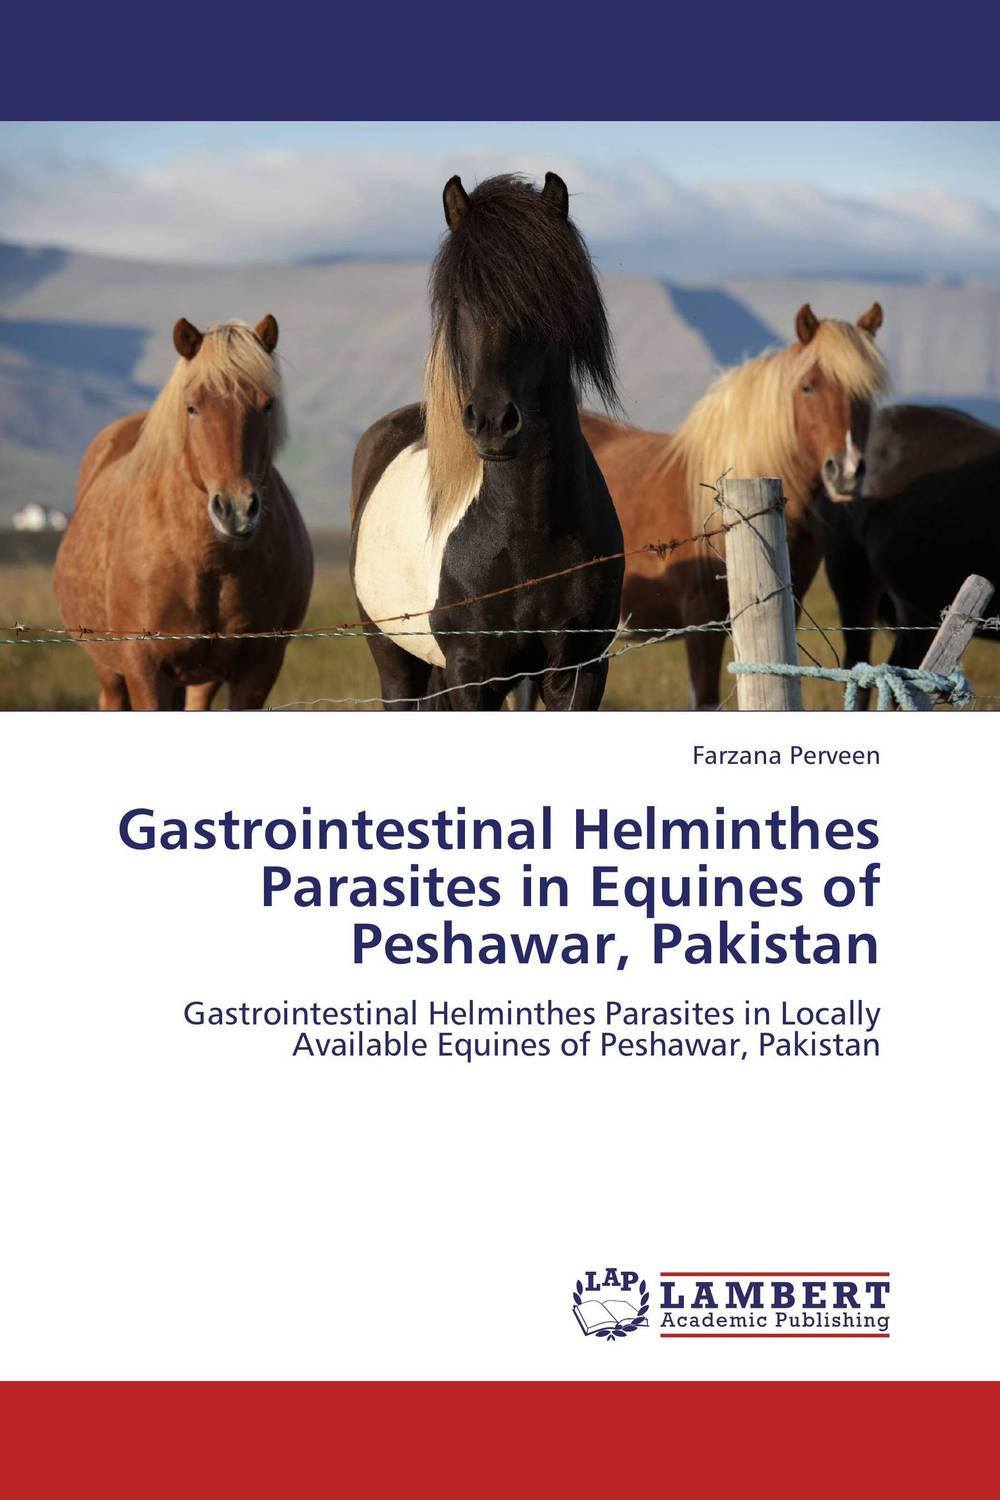 Gastrointestinal Helminthes Parasites in Equines of Peshawar, Pakistan lesions of skin of sheep and goats due to external parasites